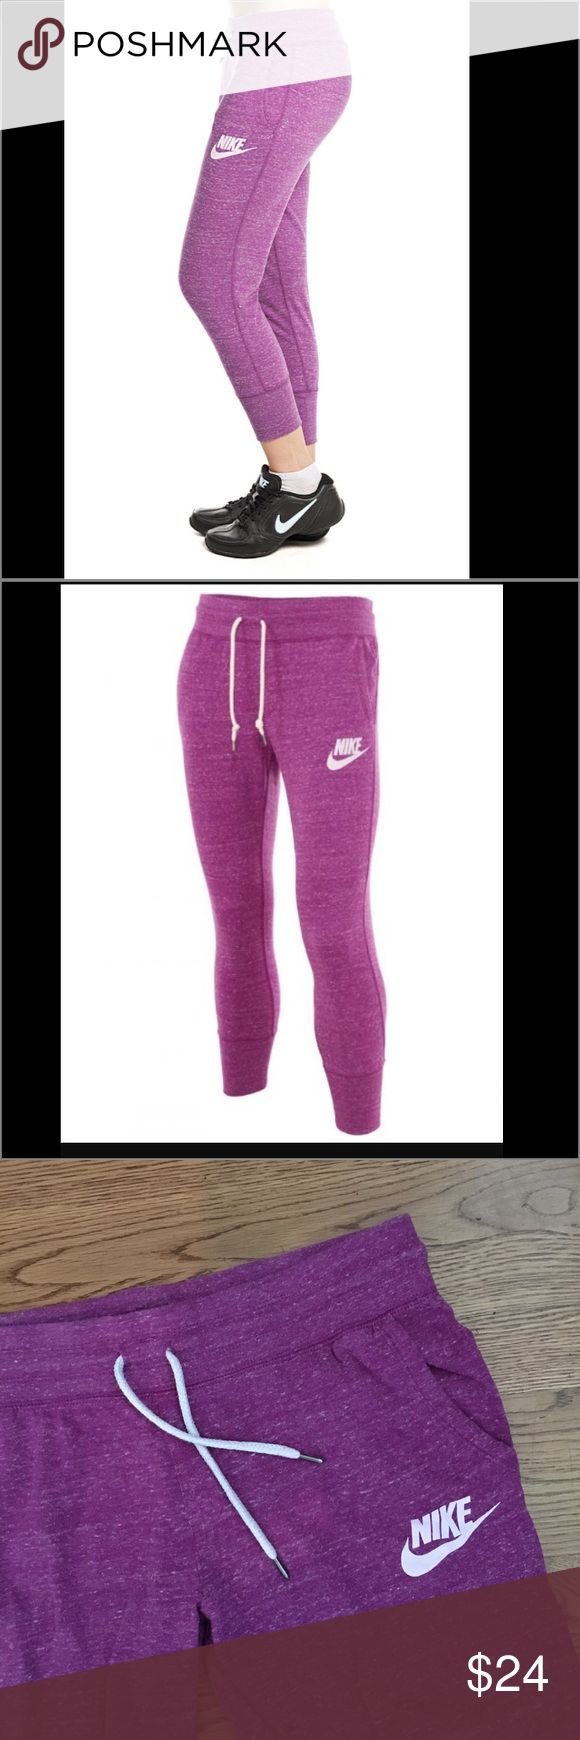 New Listing! Nike gym vintage capris Lightweight French Terry sweatpants are designed with a wide, elasticized waist band and slim, athletic fit for versatile and comfortable wear. Slant pockets, drawstring waist, 60% organic cotton, 40% polyester. Size medium -excellent condition. Color is berry- purple/pink. Nike Pants Capris